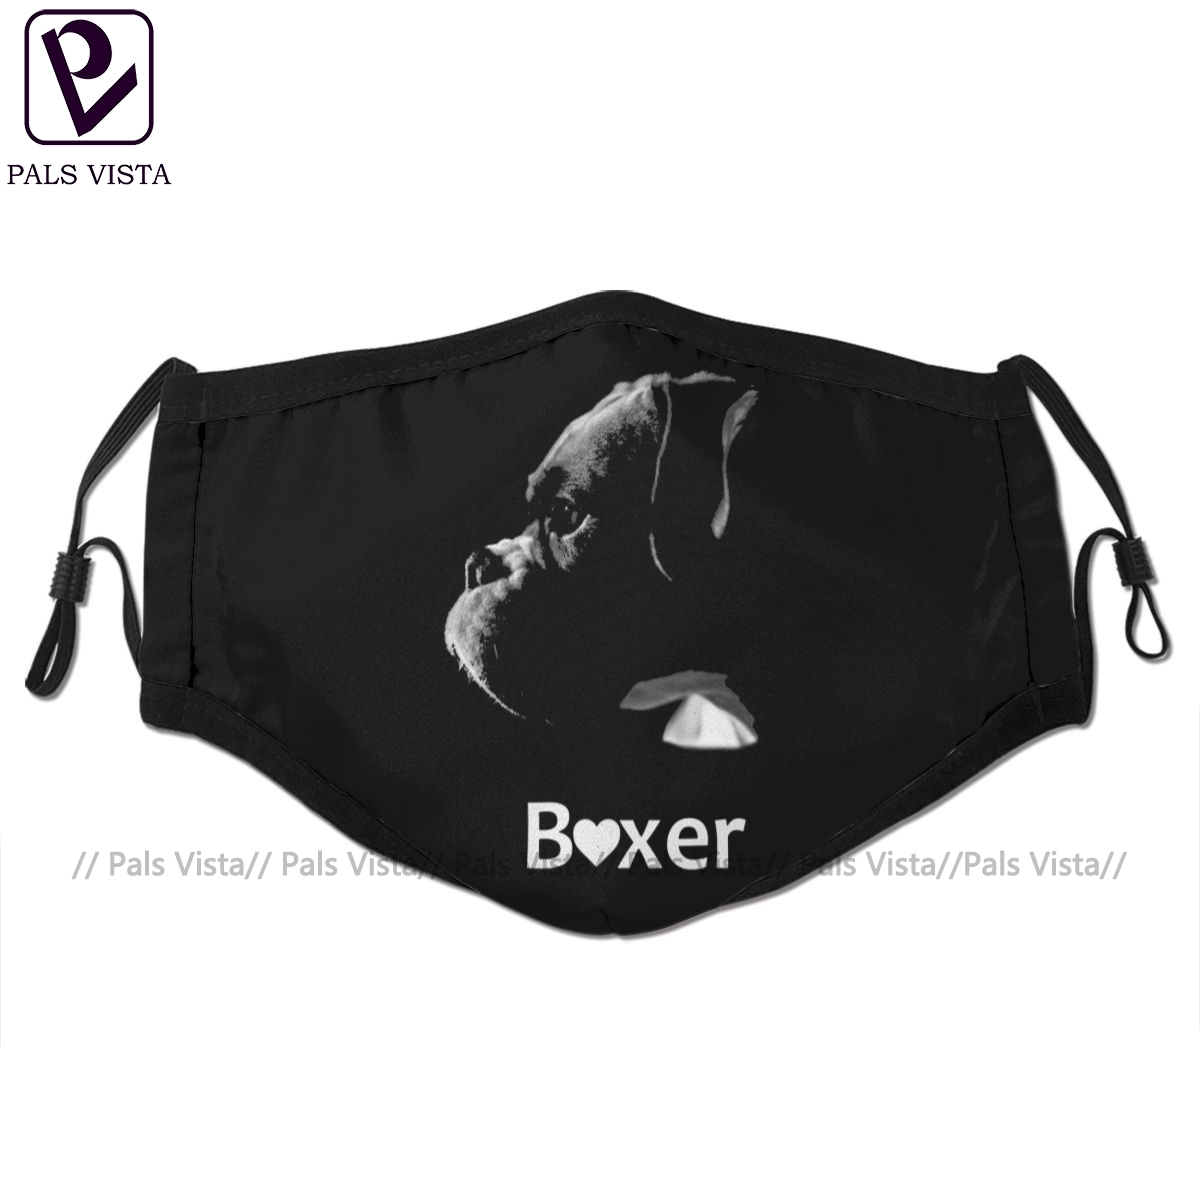 Boxer Dog Mouth Face Mask Boxer Love Facial Mask Fashion Funny With 2 Filters For Adult